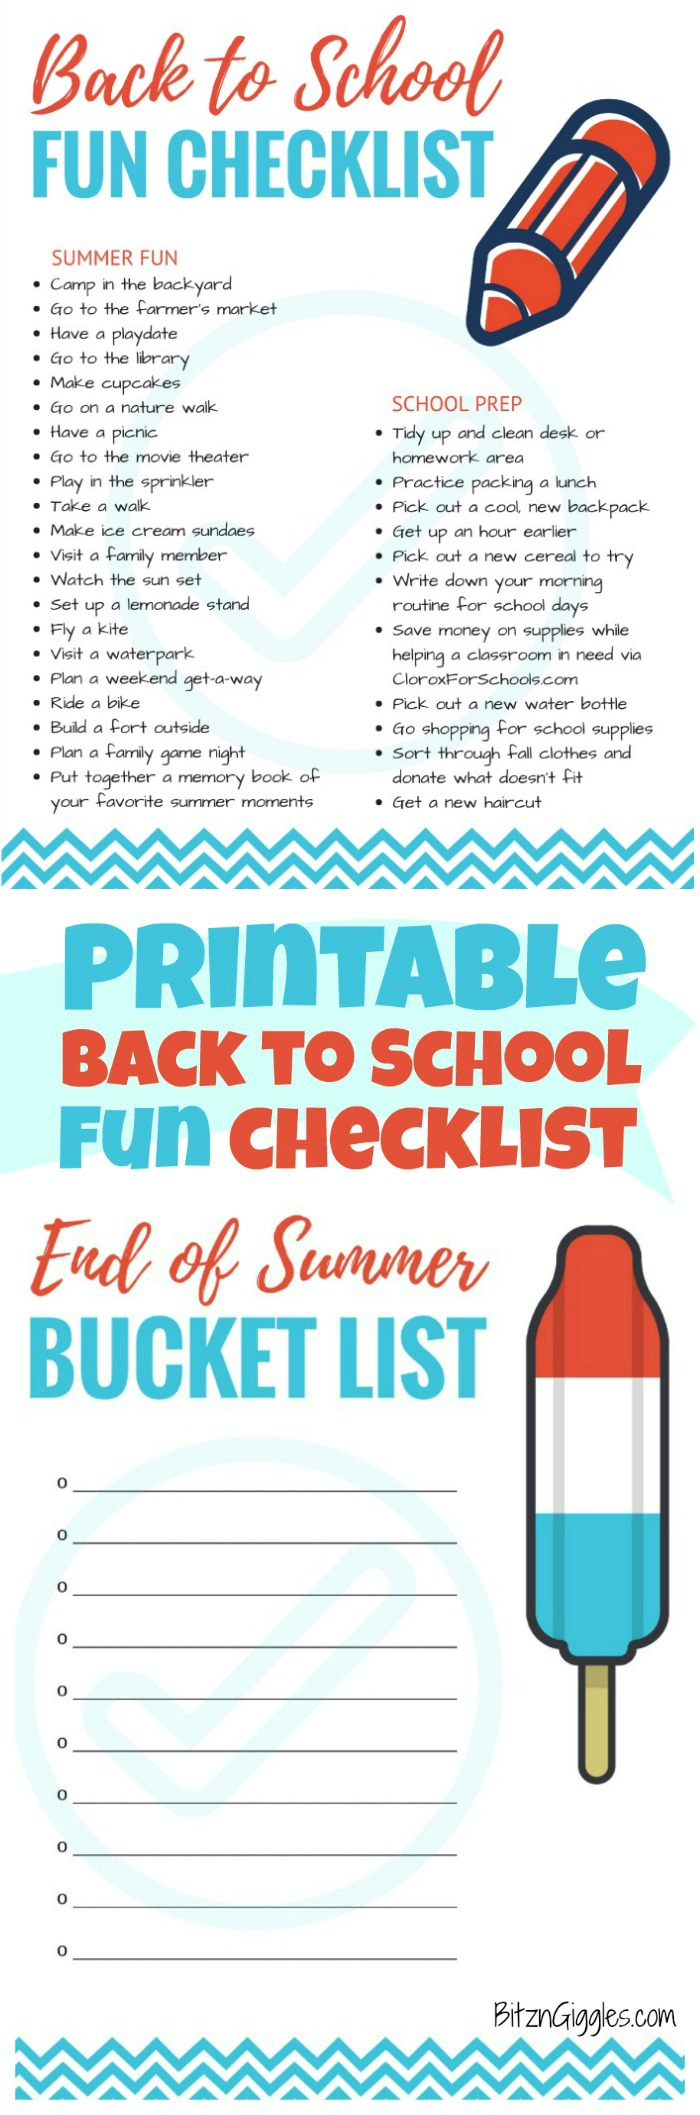 Printable Back to School Fun Checklist - Fun ideas for ending the summer with a bang and easing into the kids' back-to-school schedule.